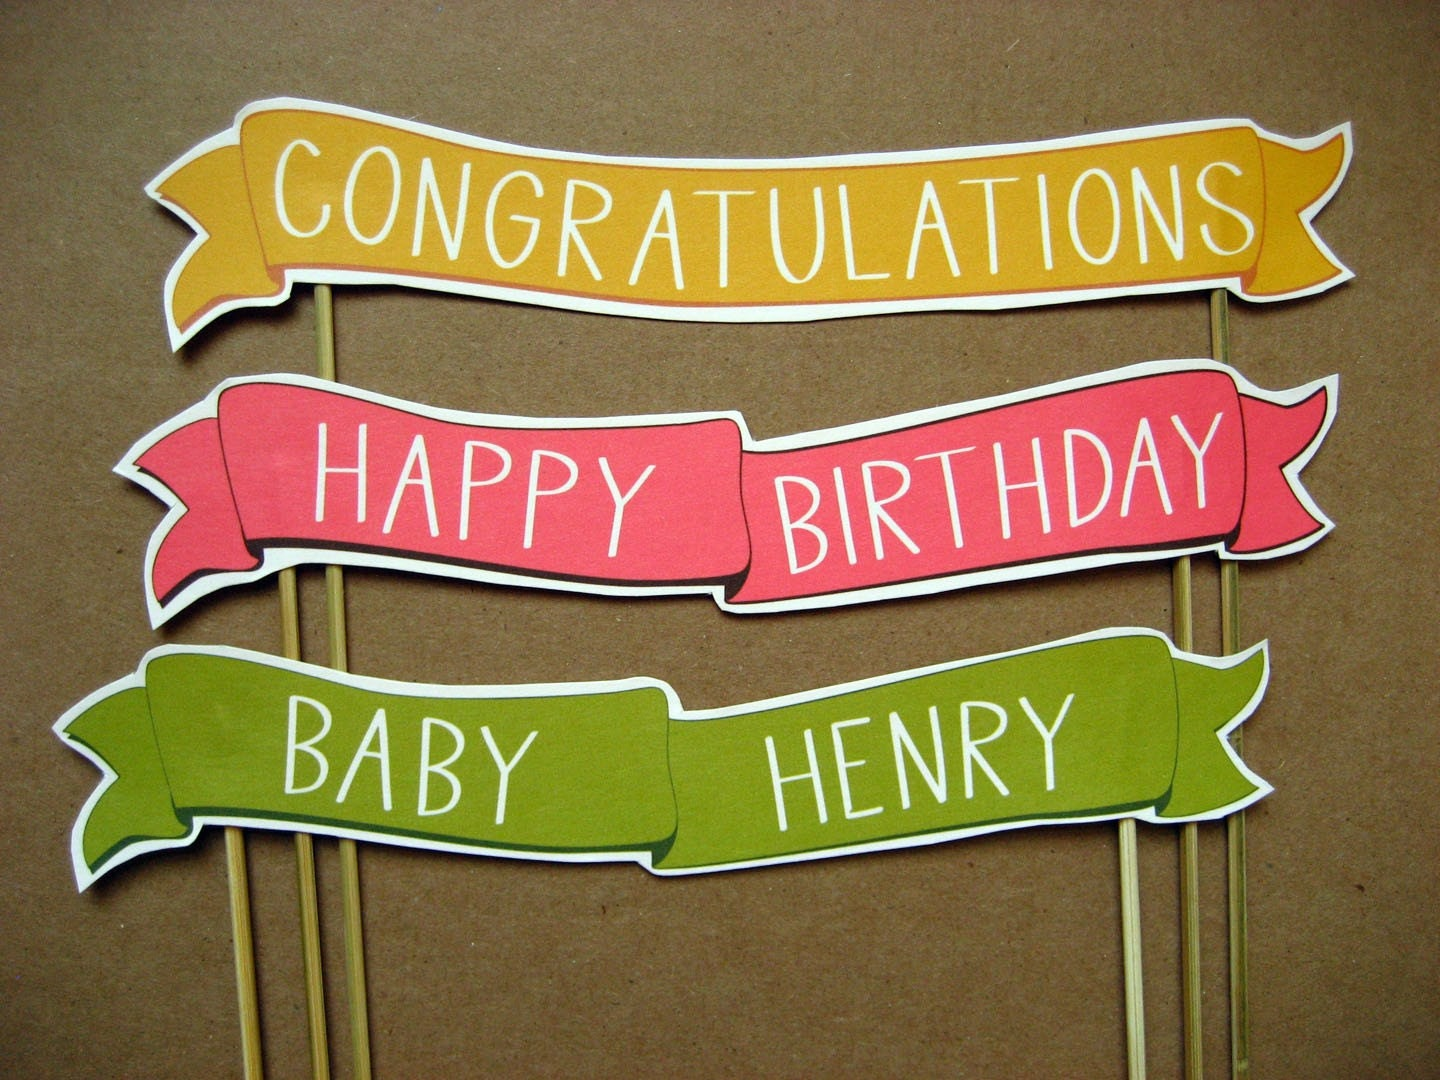 Sale Half Off Congratulations Cake Banner In Yellow And